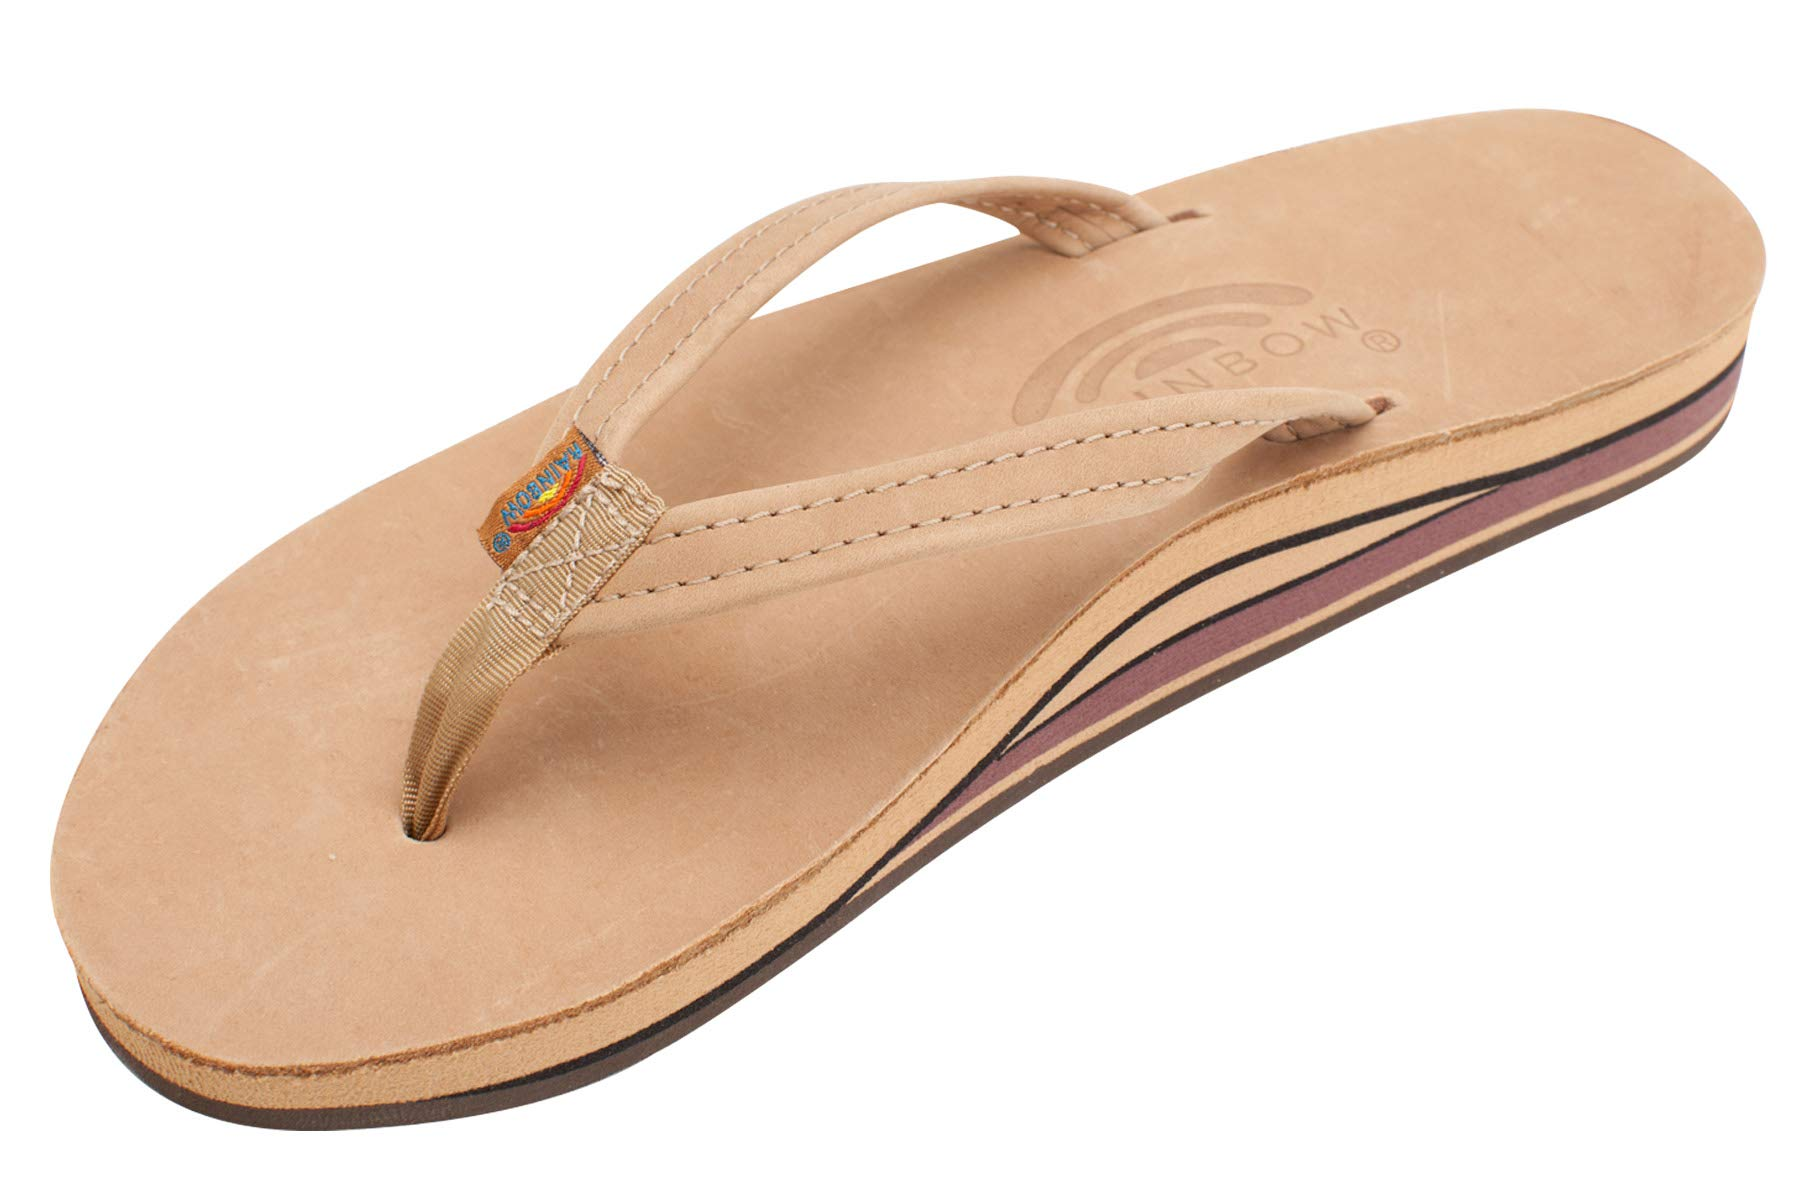 Rainbow Womens Premier Leather Double Stack Narrow Strap Sandals Sierra, Brown,Large/7.5-8.5 B(M) US by Rainbow Sandals